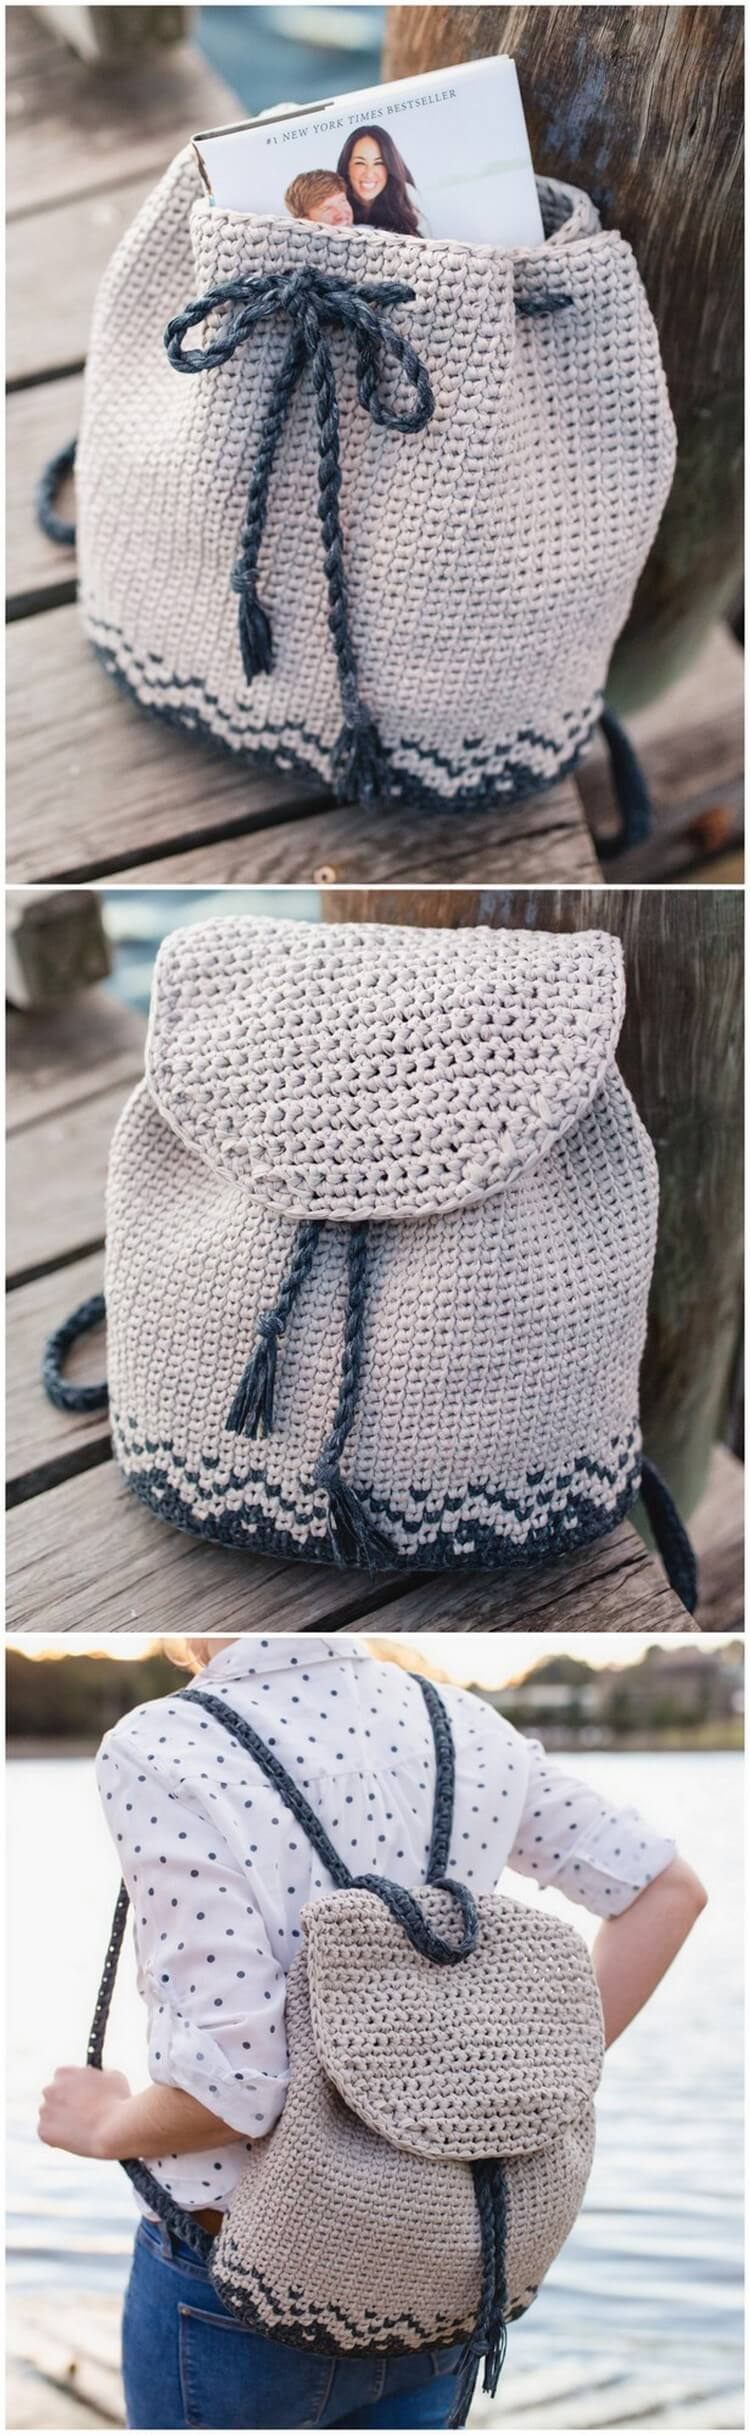 Crochet Backpack Pattern (18)